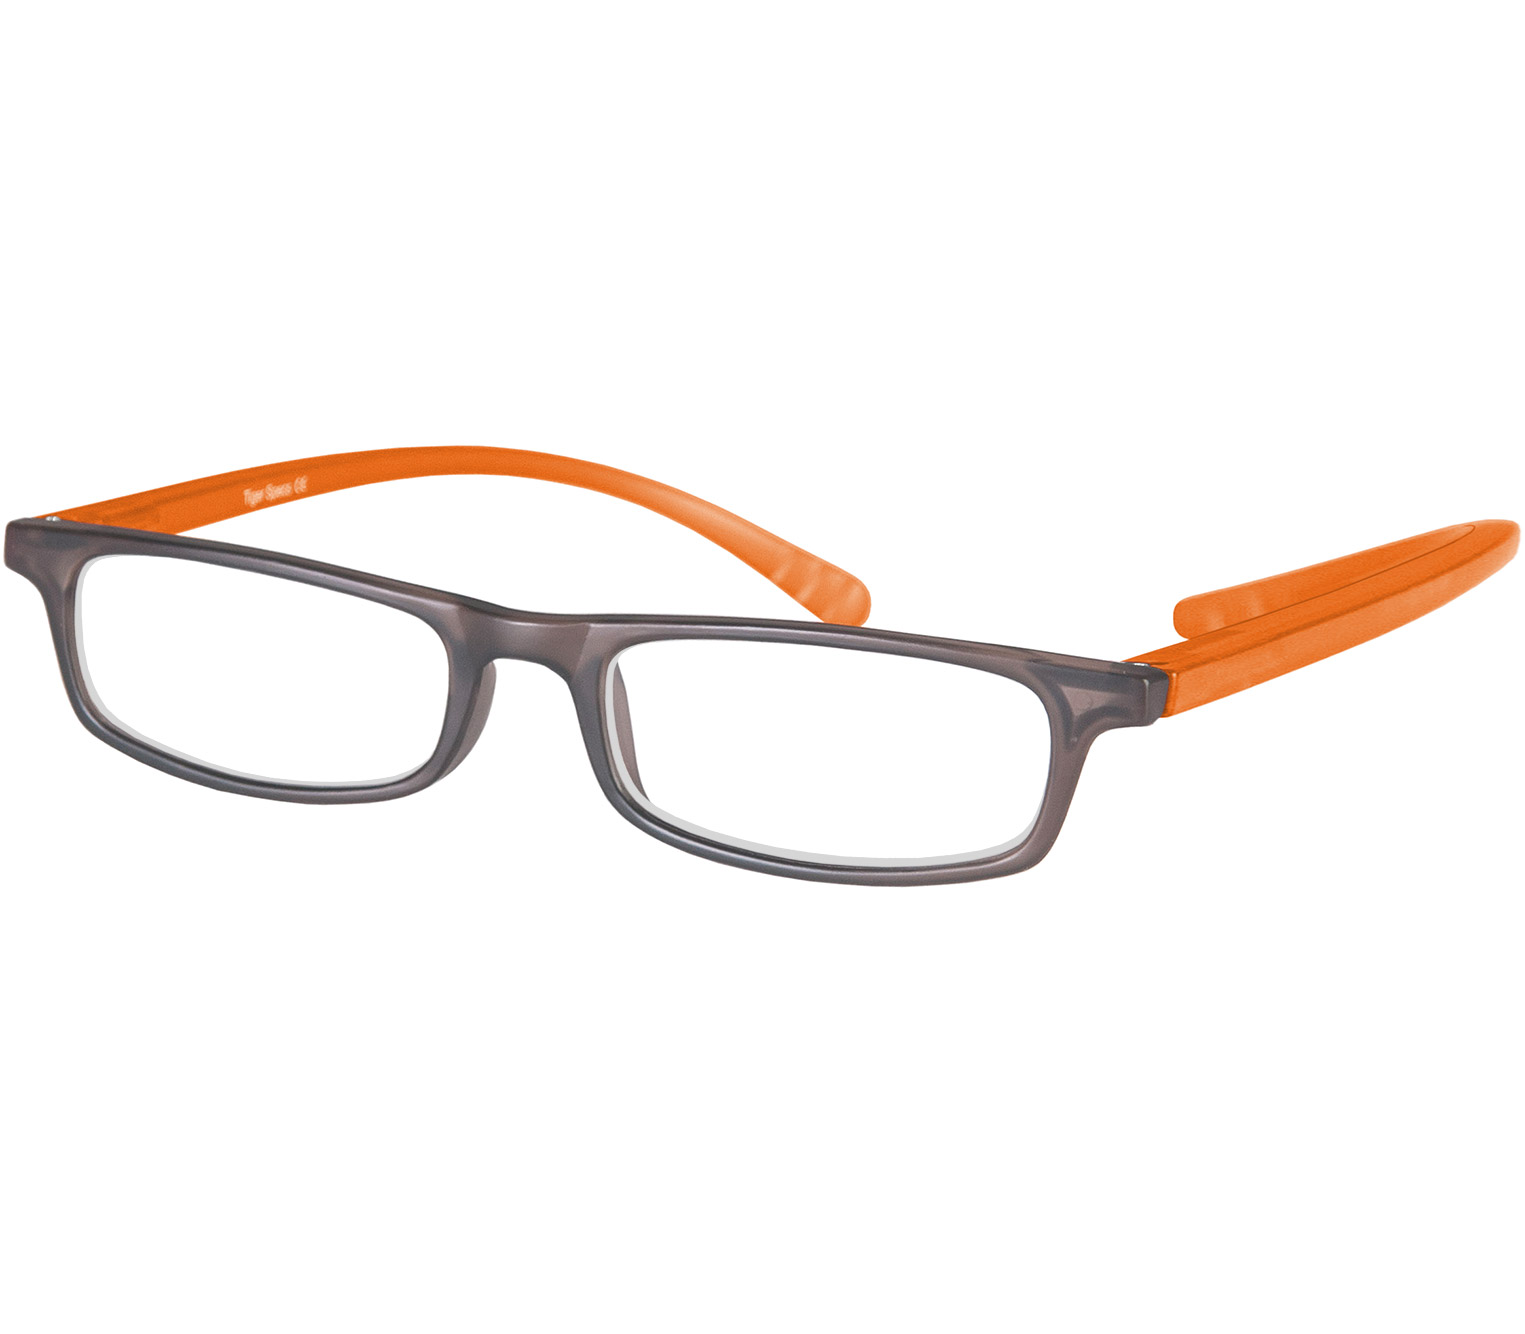 Main Image (Angle) - Jam (Orange) Neck Hanging Reading Glasses